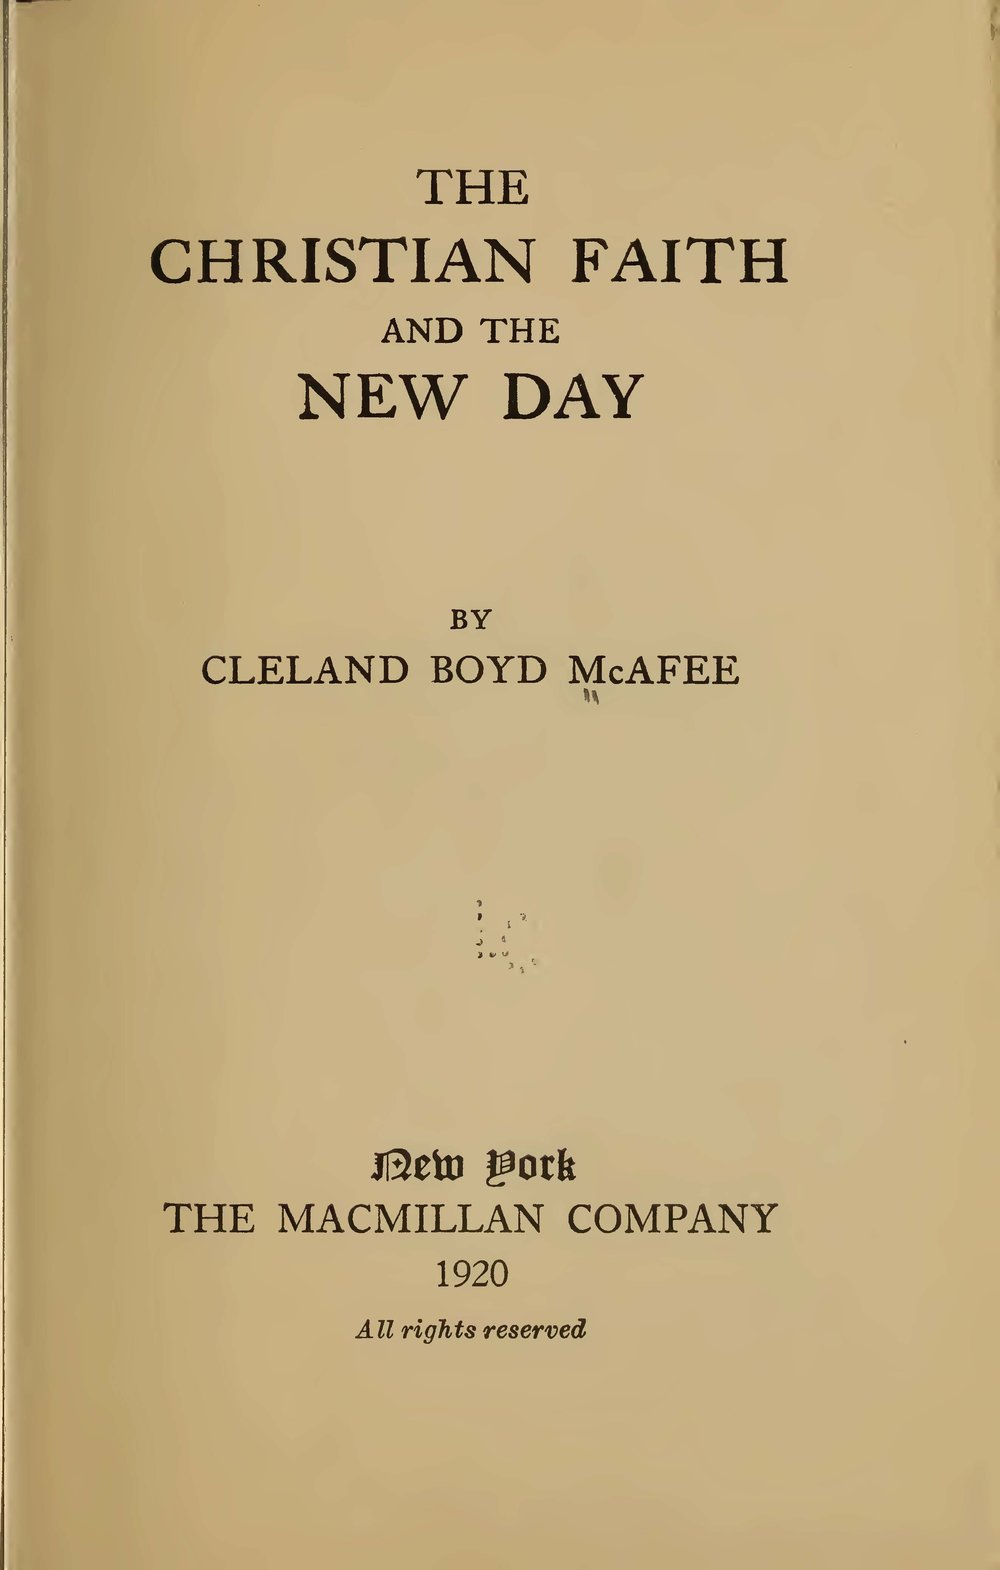 McAfee, Cleland Boyd, The Christian Faith and the New Day Title Page.jpg